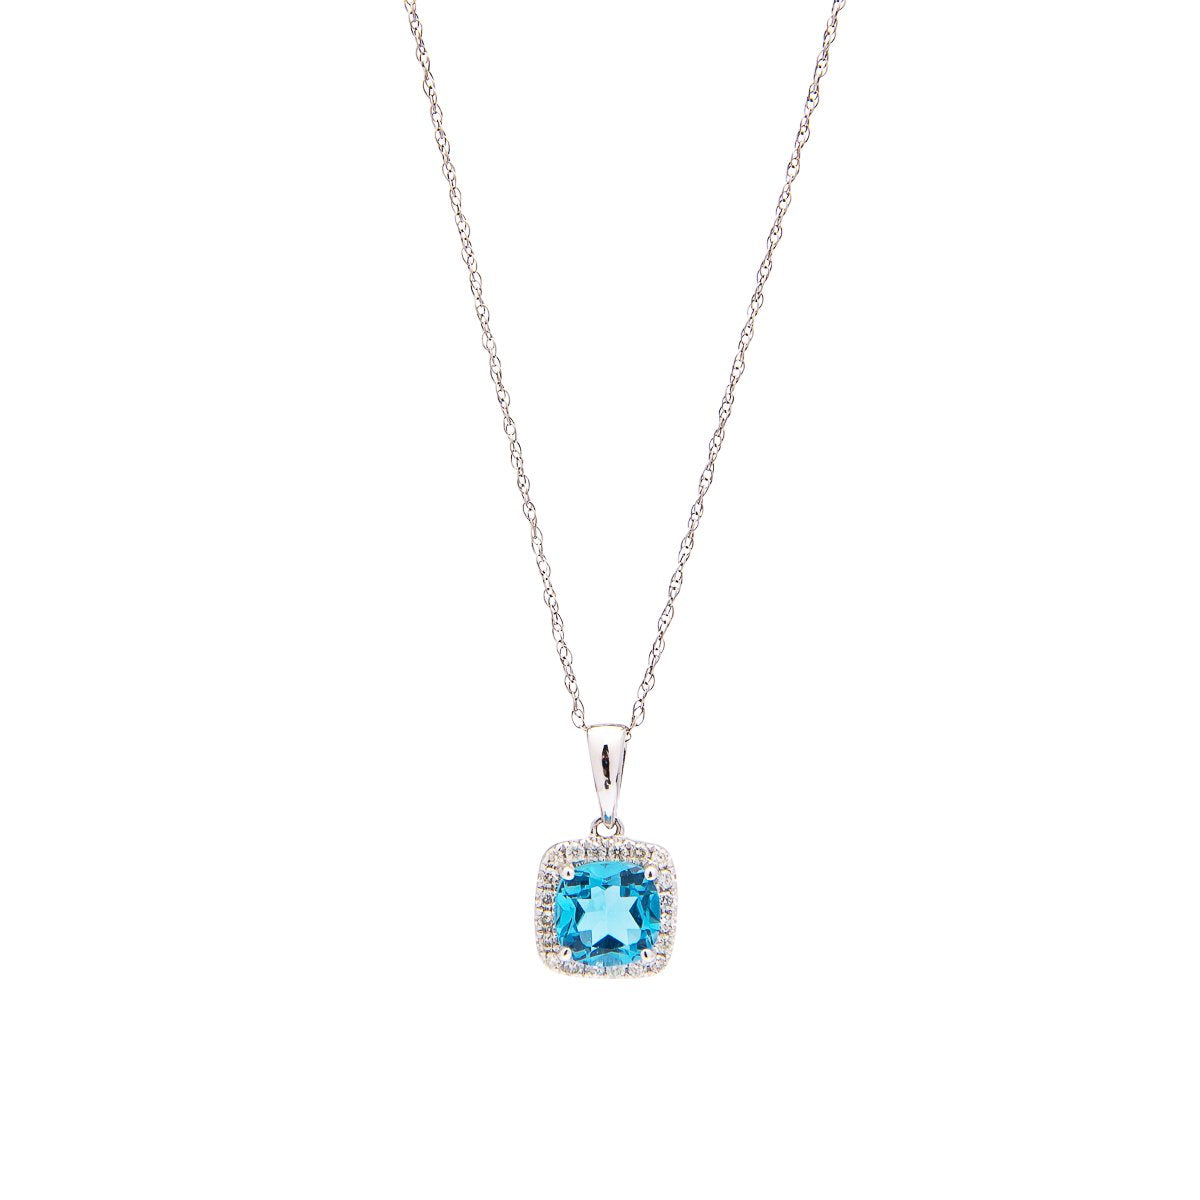 Sabel Collection 14K White Gold Cushion Cut Blue Topaz and Diamond Pendant